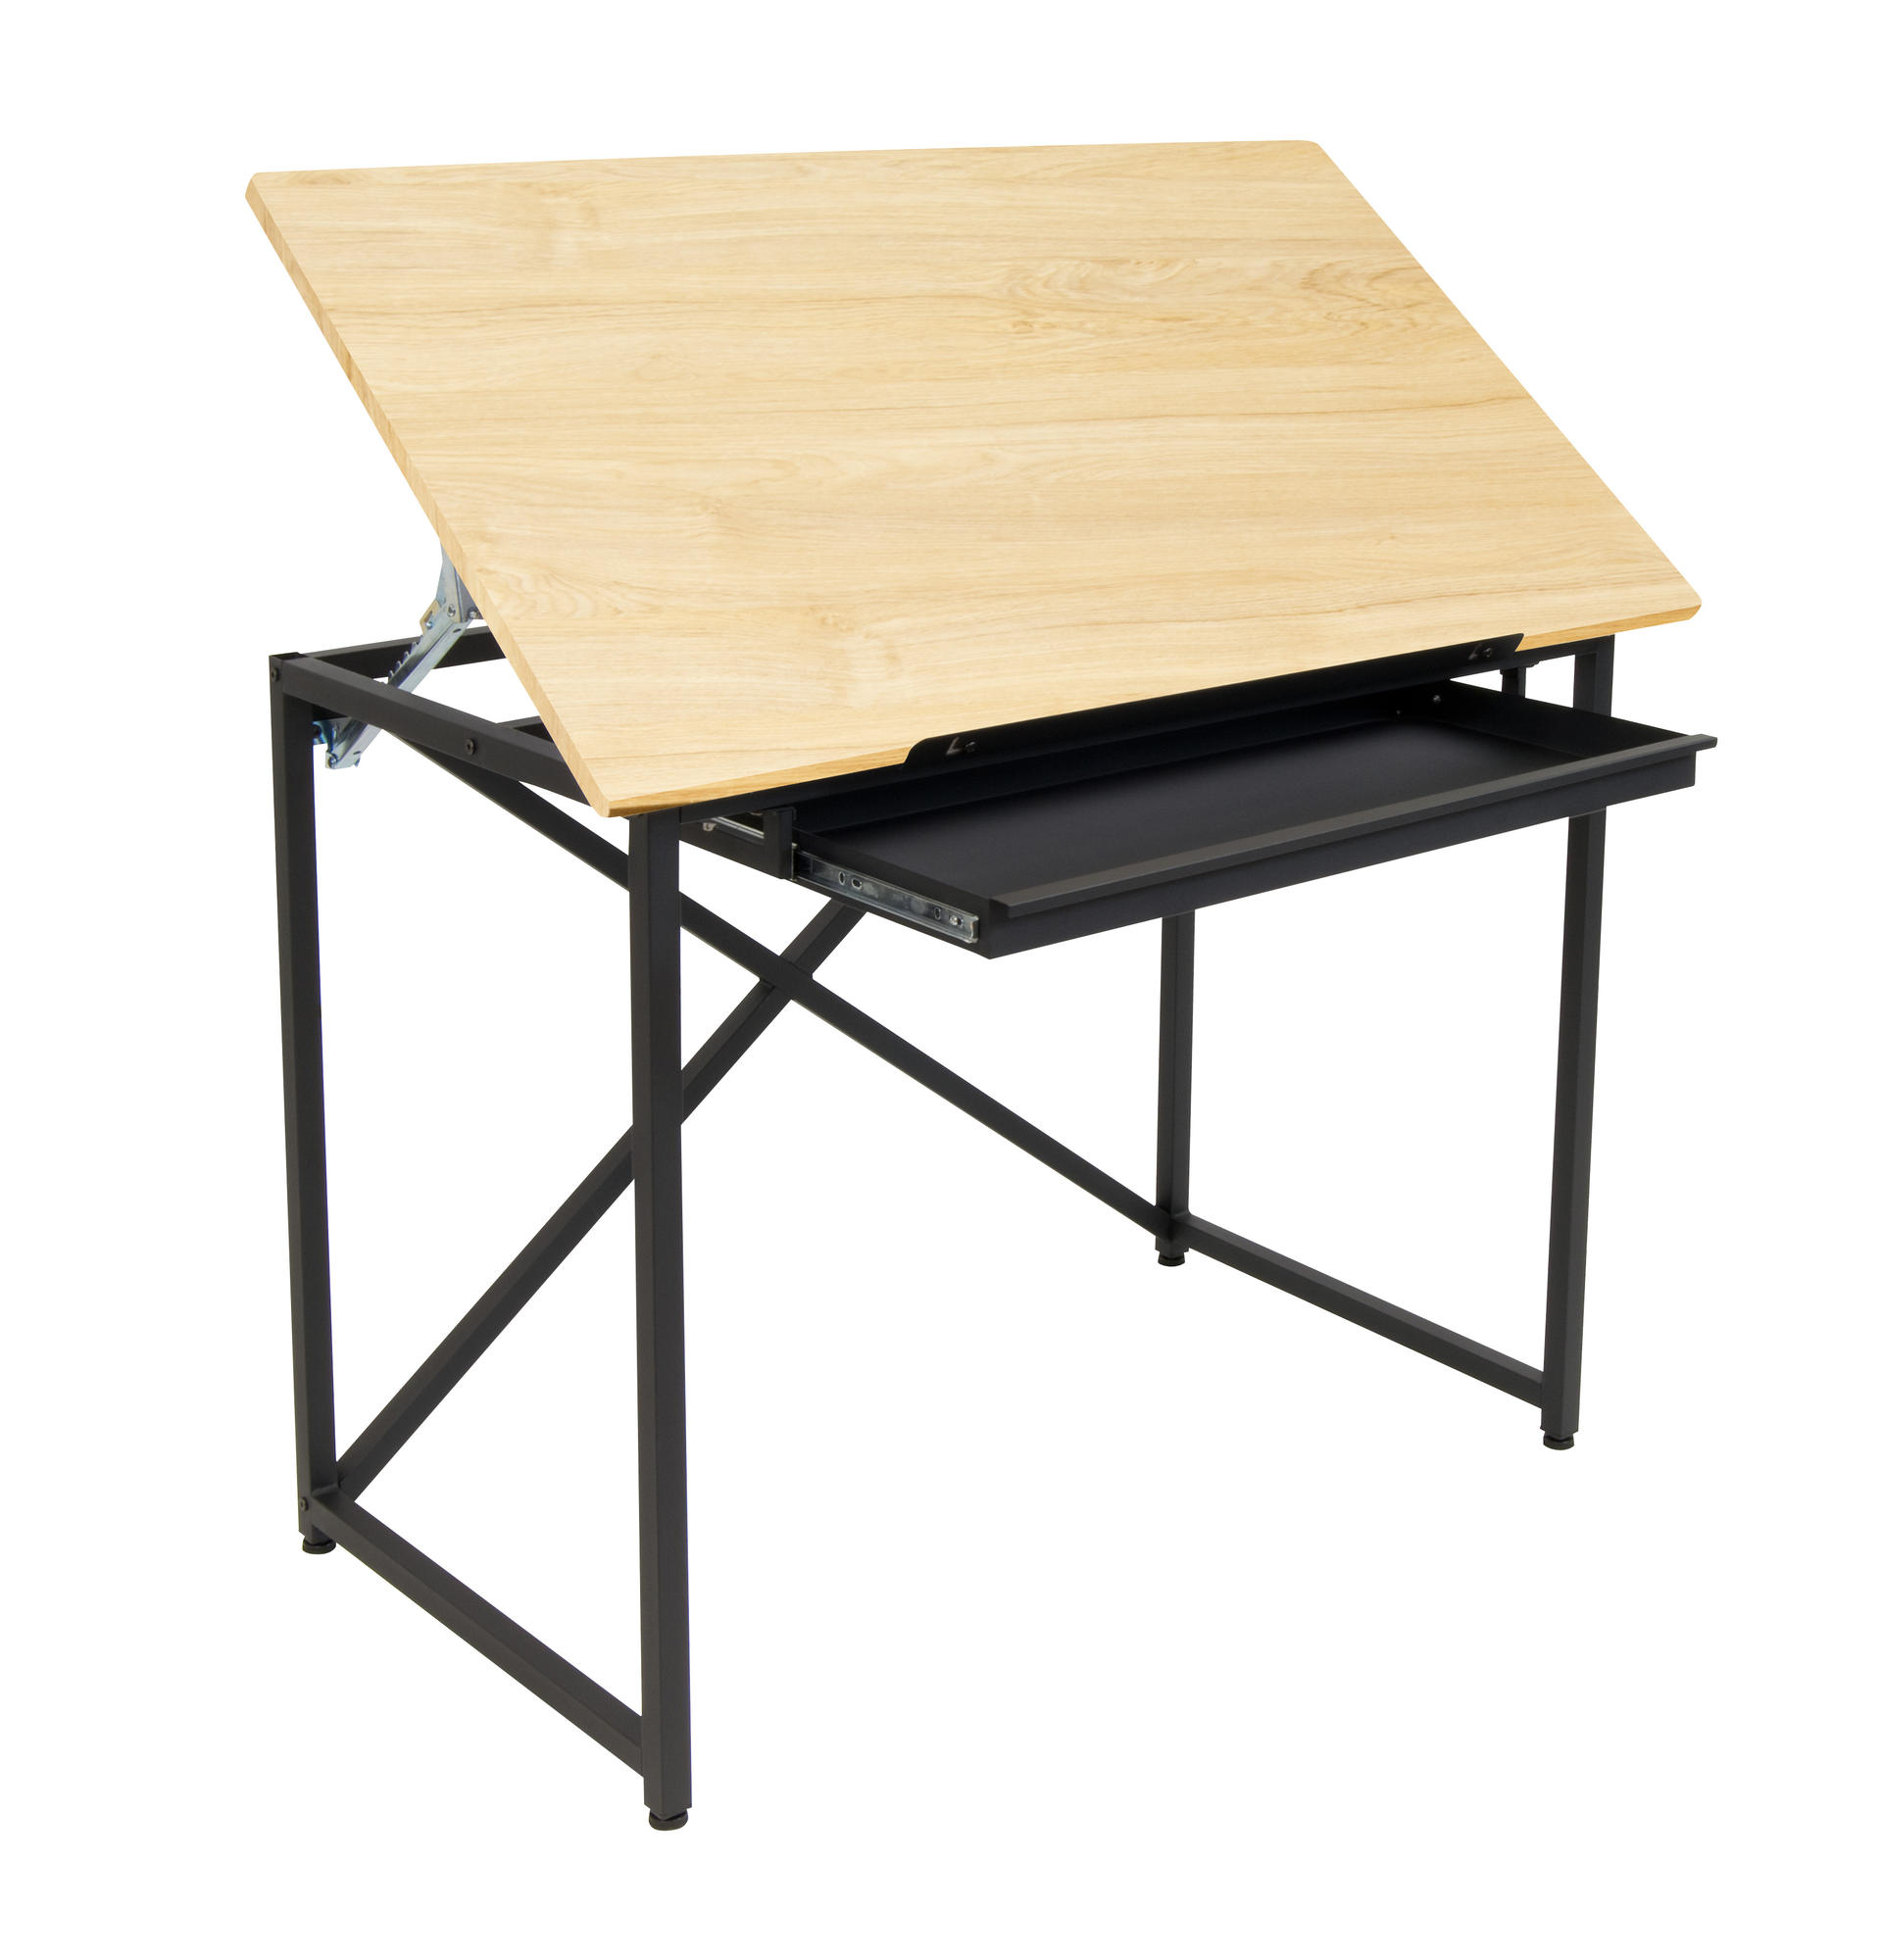 Merveilleux Studio Drafting Table U0026 Hobby Center By Artistu0027s Loft ...